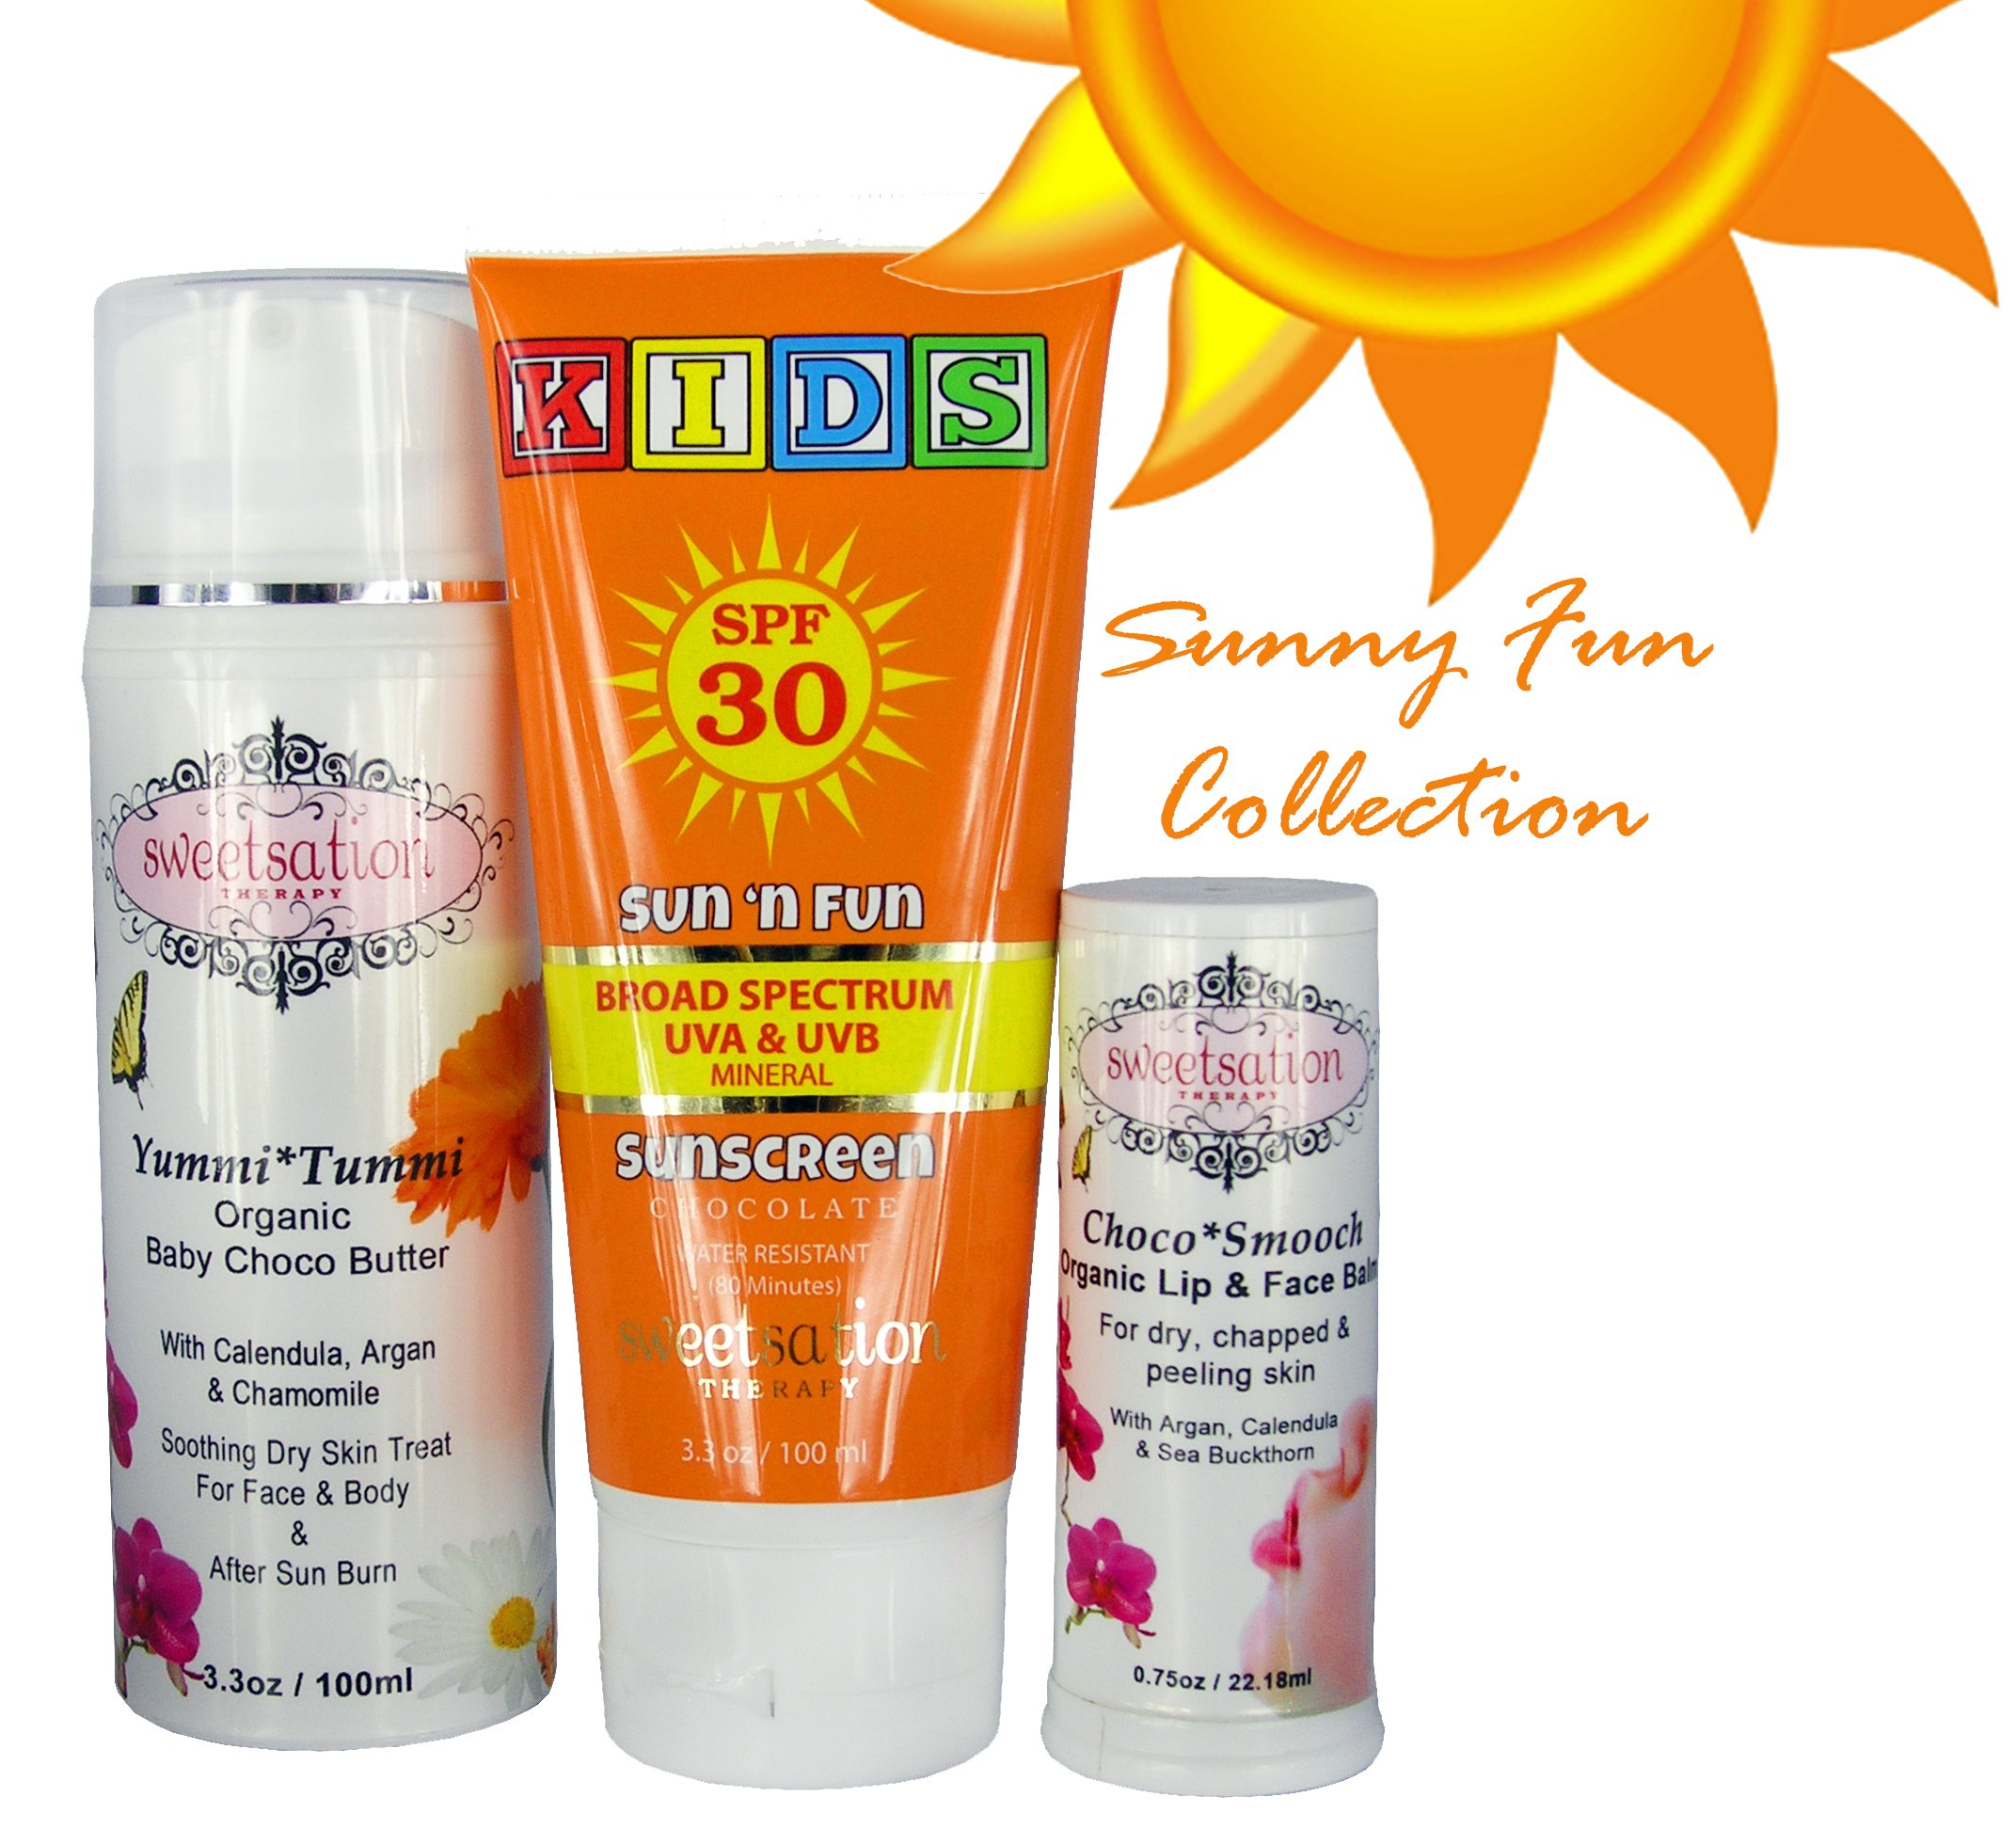 Chocolate Summer Collection''Sunny Fun'', contains Sun'n'Fun Broad Spectrum Mineral Sunscreen SPF30, YummiTummi Organic Baby Choco Butter and ChocoSmooch lip & face balm. by Sweetsation Therapy